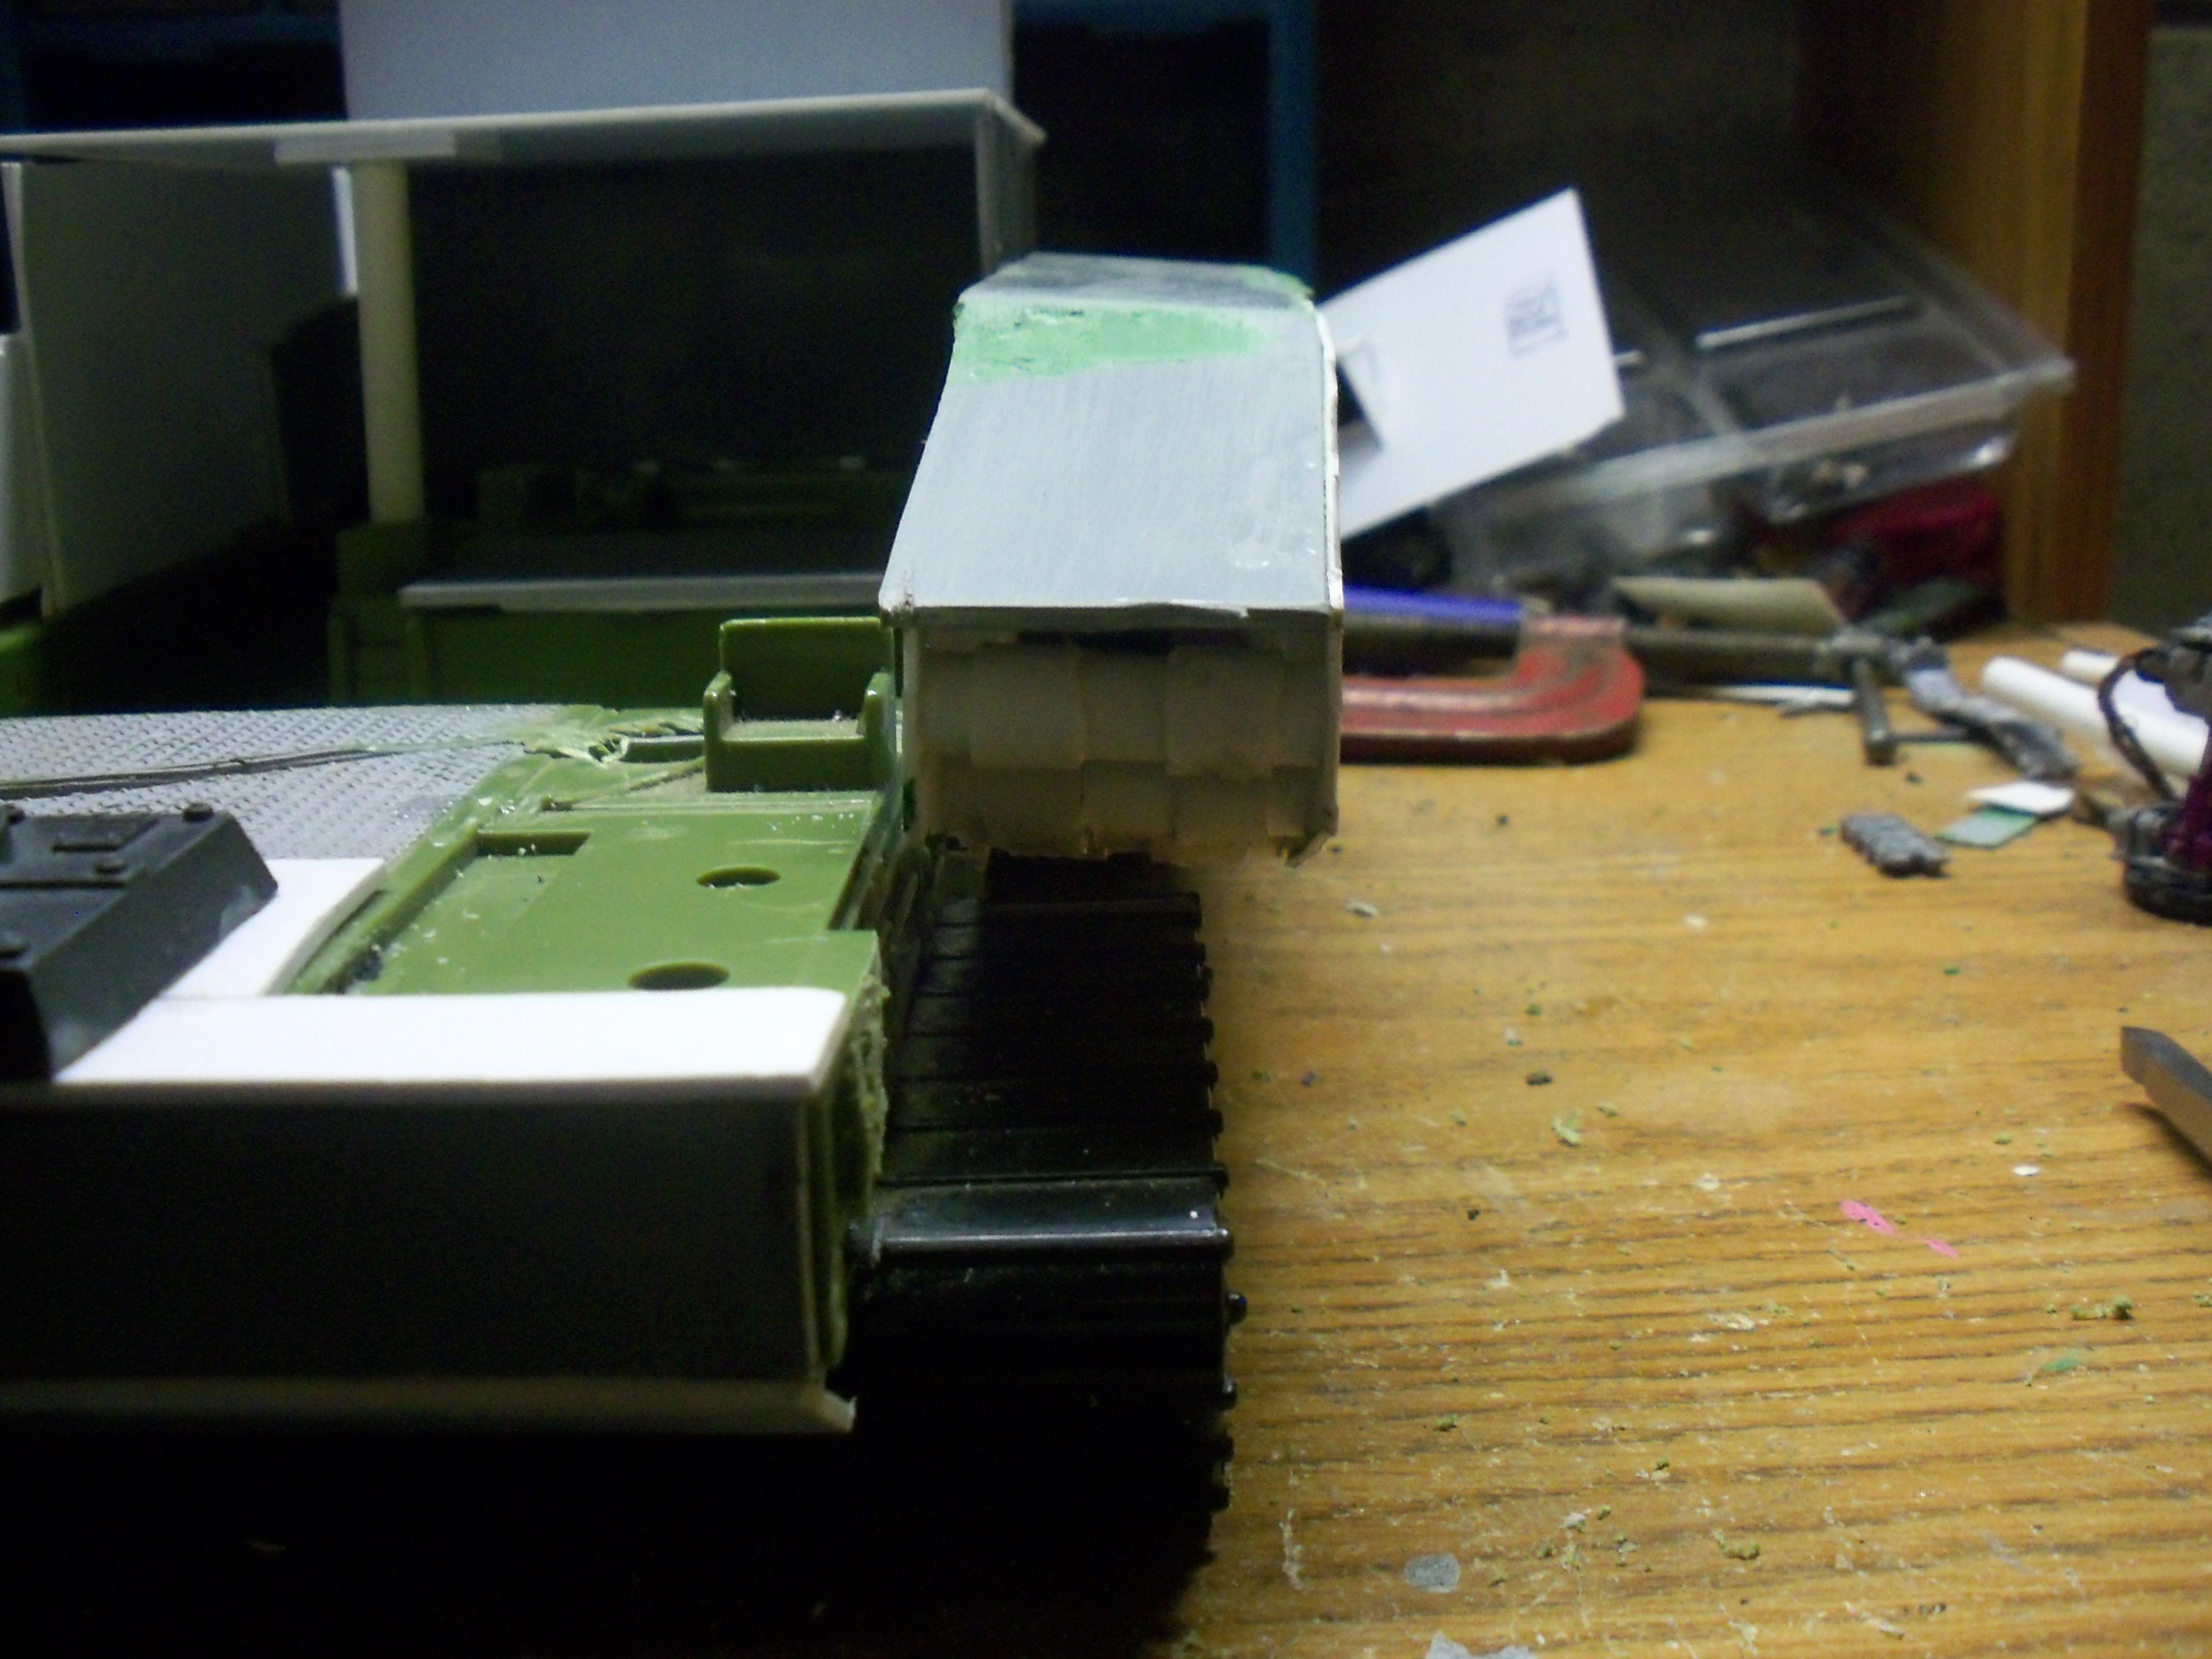 Conversion, Orks, front view of mounted tank side